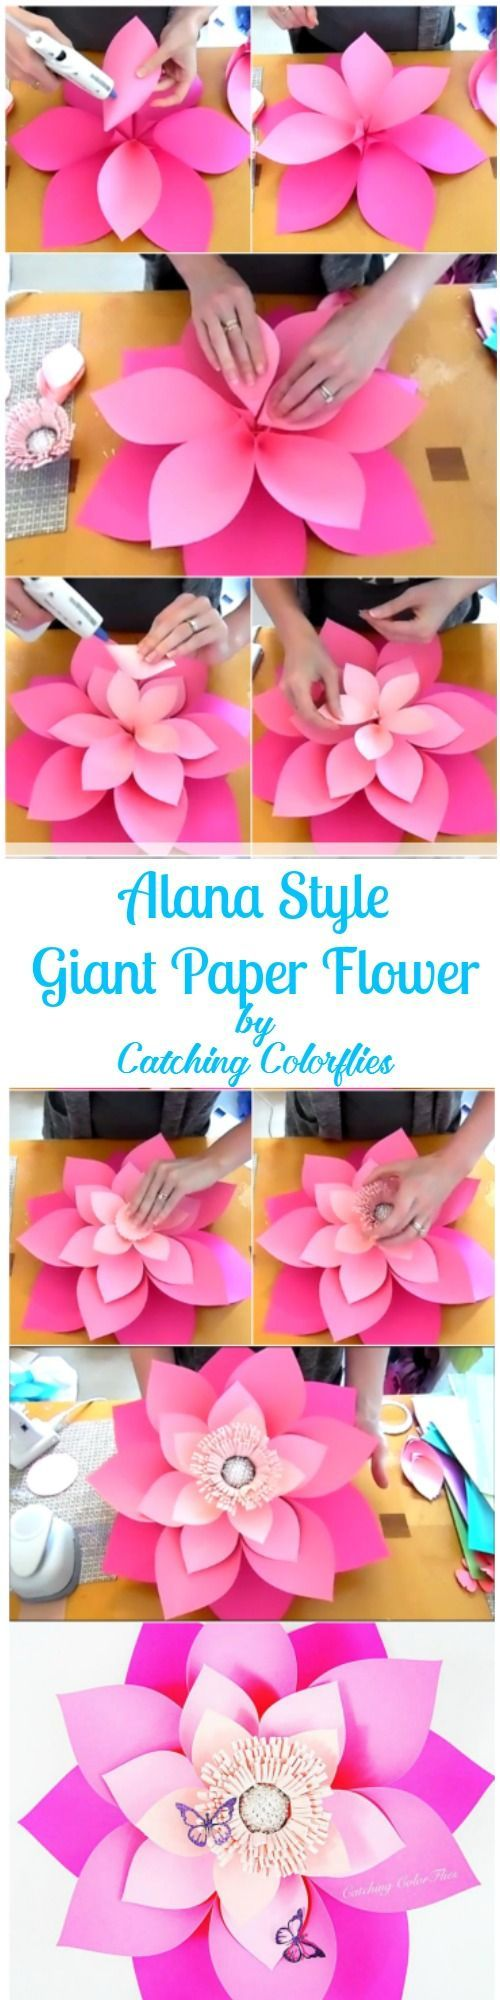 Start by watching our Hawaiian flower tutorial for the basic of forming the petals and first layer.   Once petals have been made move onto layering. You will need 4 layers of petals.1st layer: 6 petals2nd layer: 6 petals3rd layer: 6 petals4th layer: 5 petalsPurchase templates here- Alana TemplatesWatch Alana video here: Purchase templates here- Alana Templates